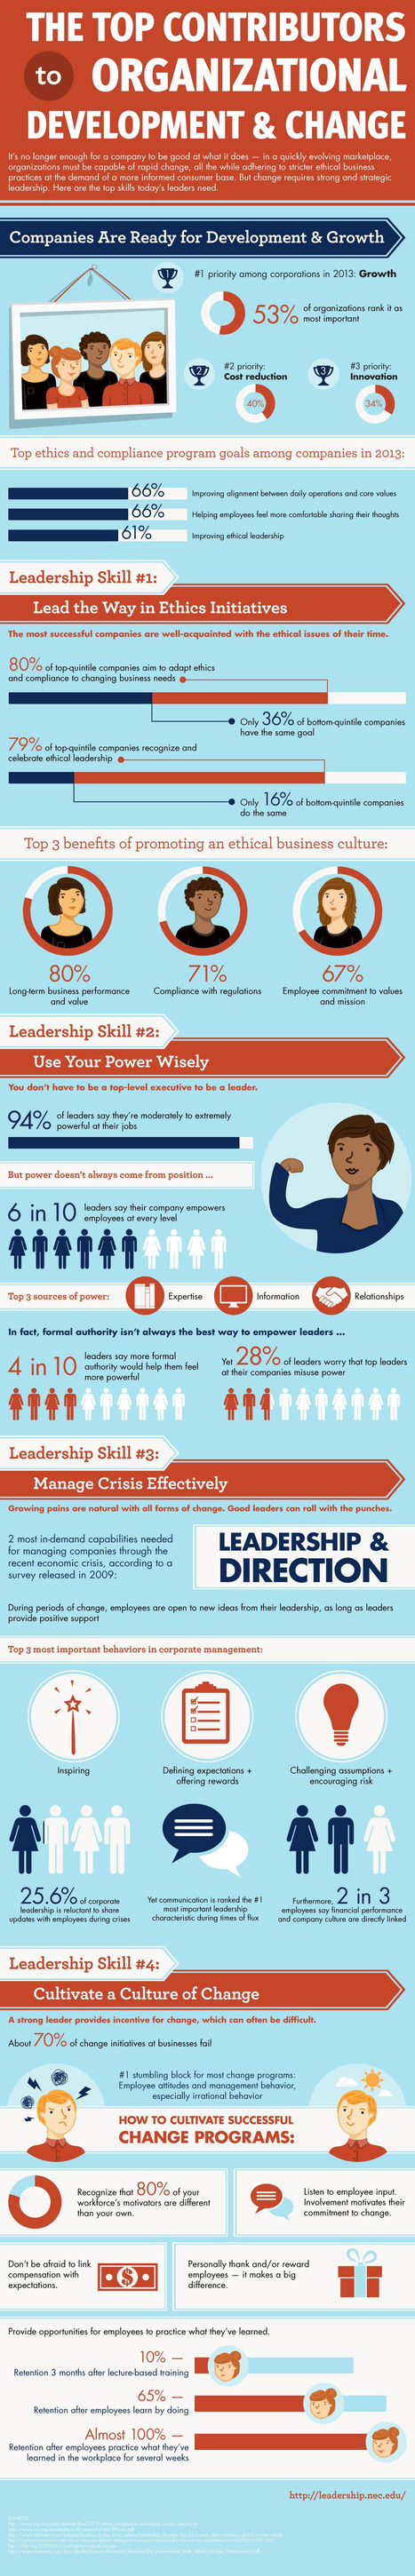 Top Contributors to Organizational Development and Change by entrepreneur.com   e-Leadership   Scoop.it